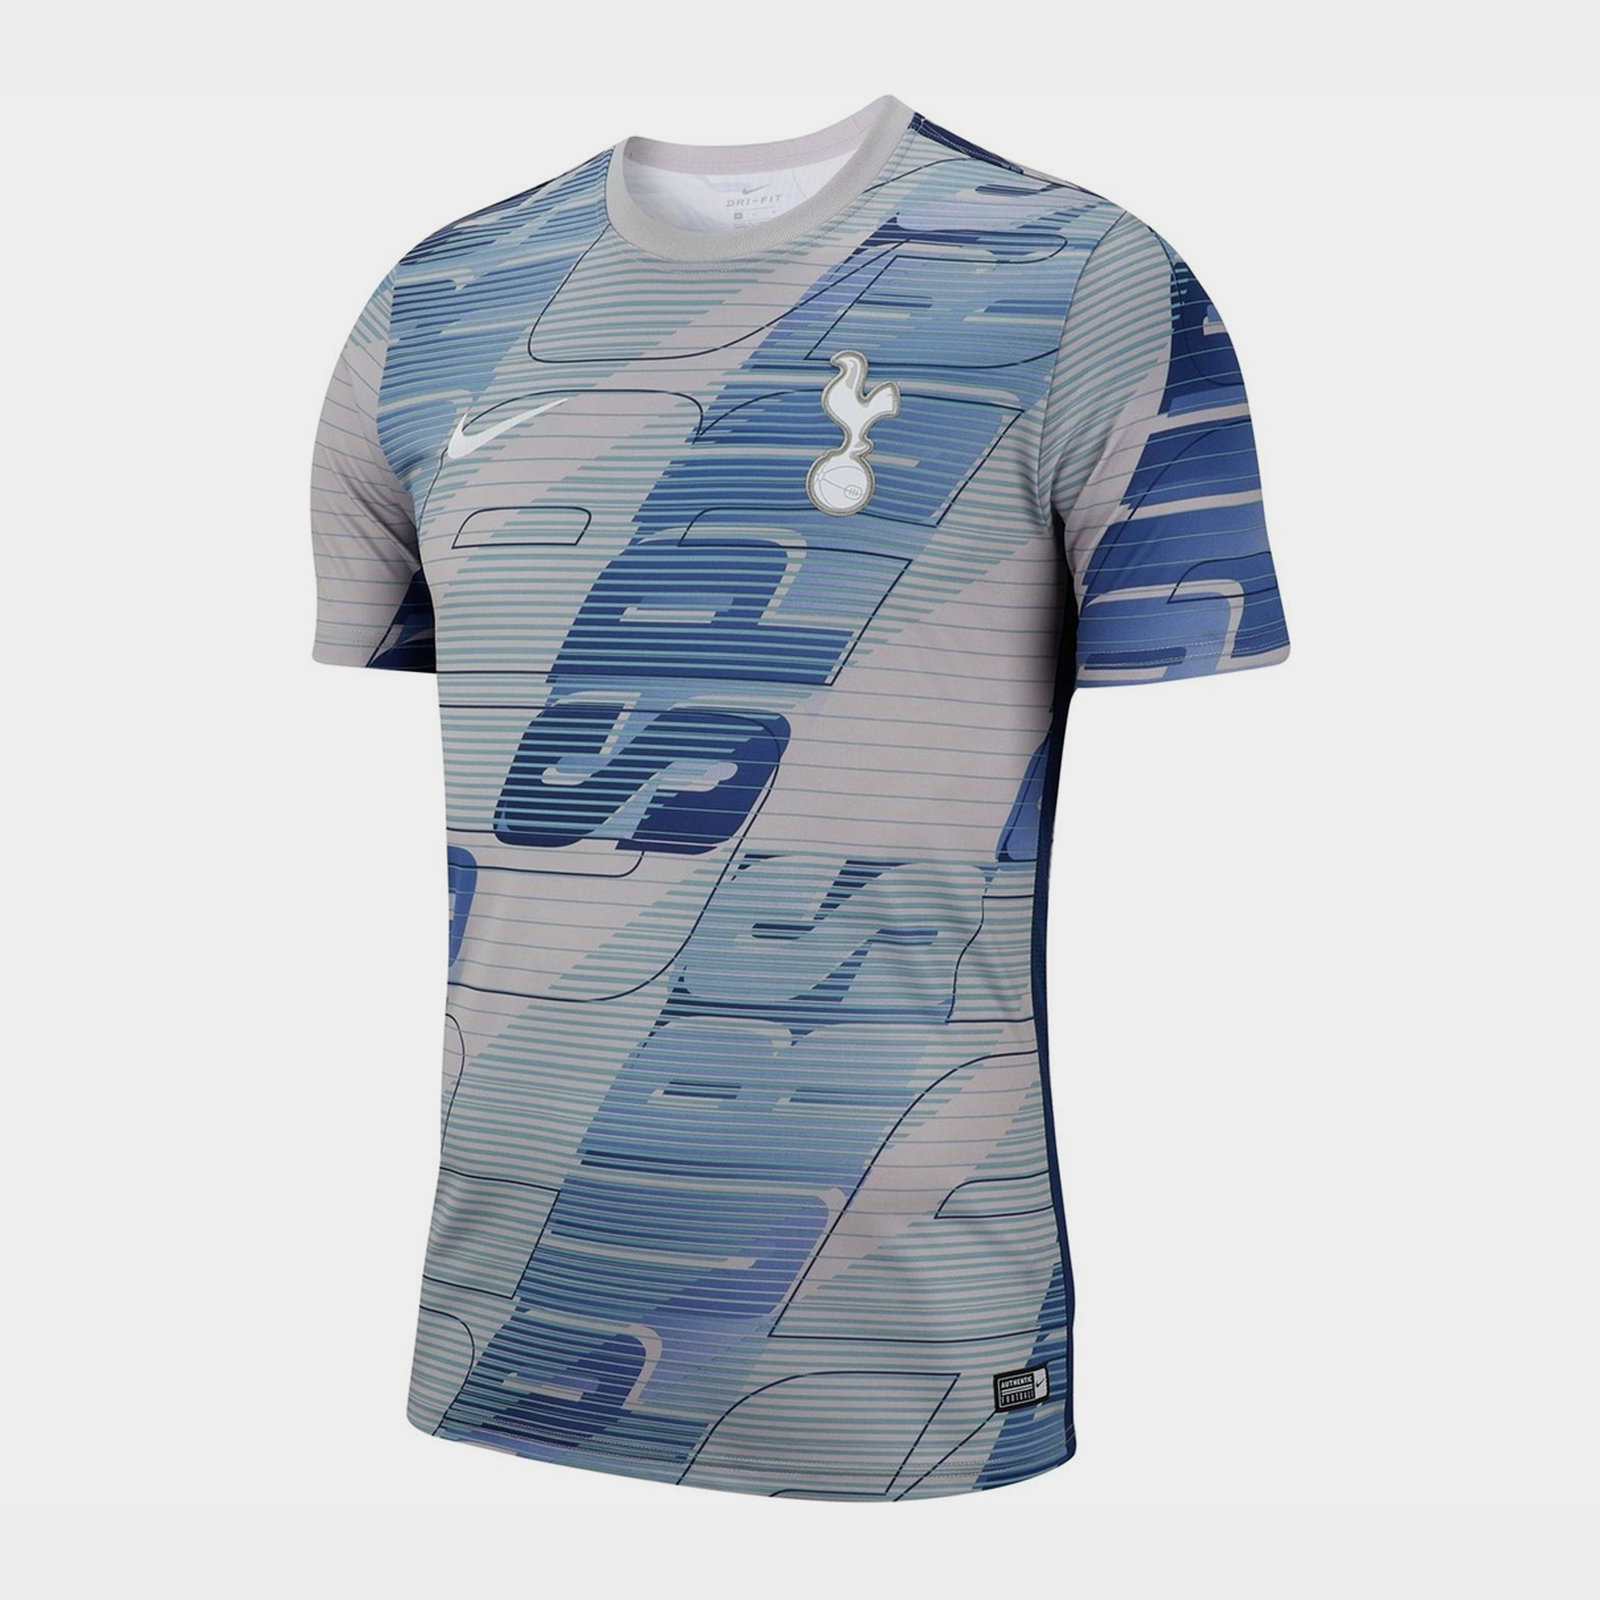 Tottenham Hotspur 19/20 Pre Match Football Shirt